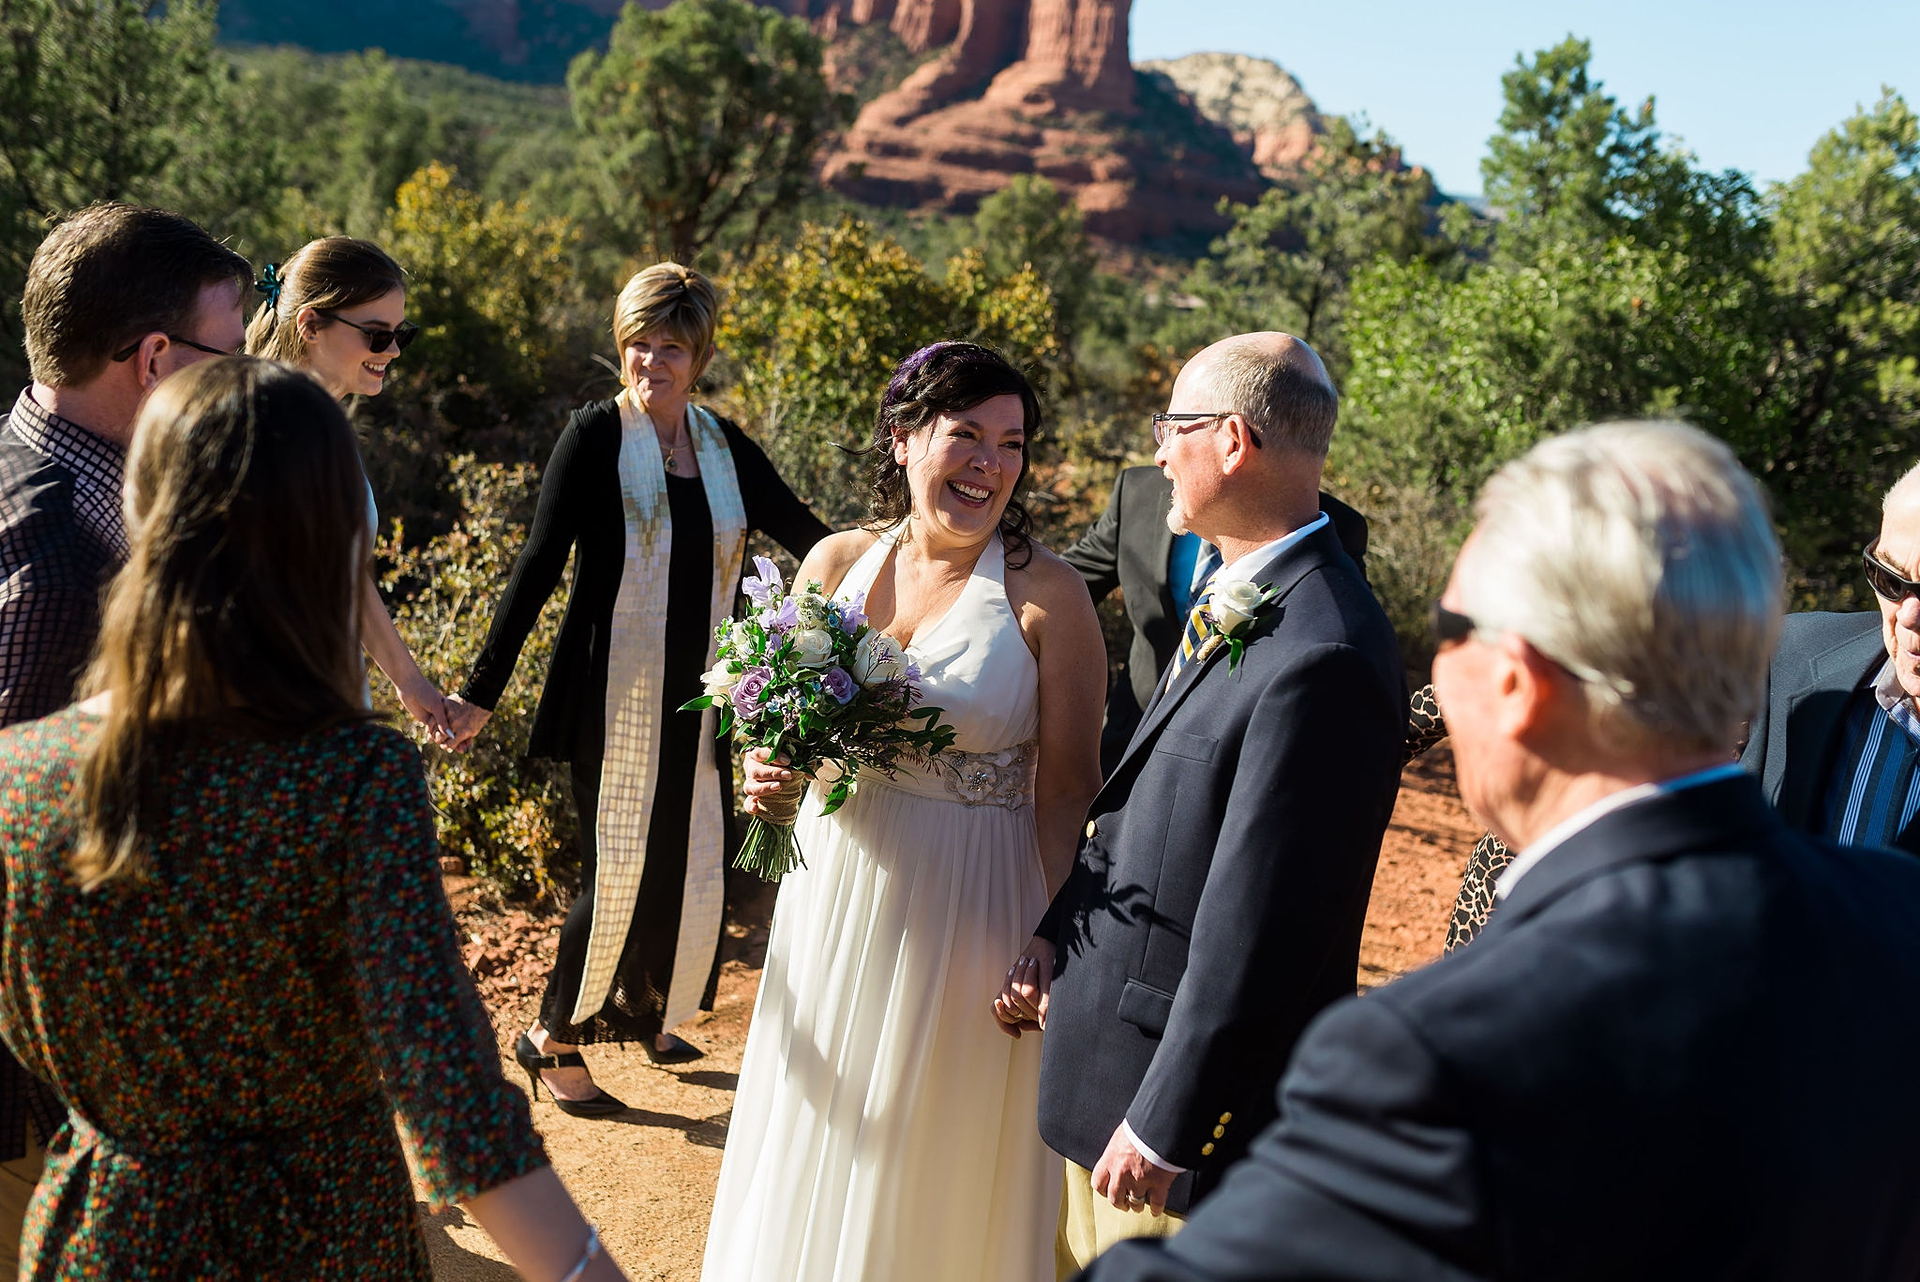 Sedona Arizona Wedding Ceremony Pictures | The bride and groom are surrounded by their family members